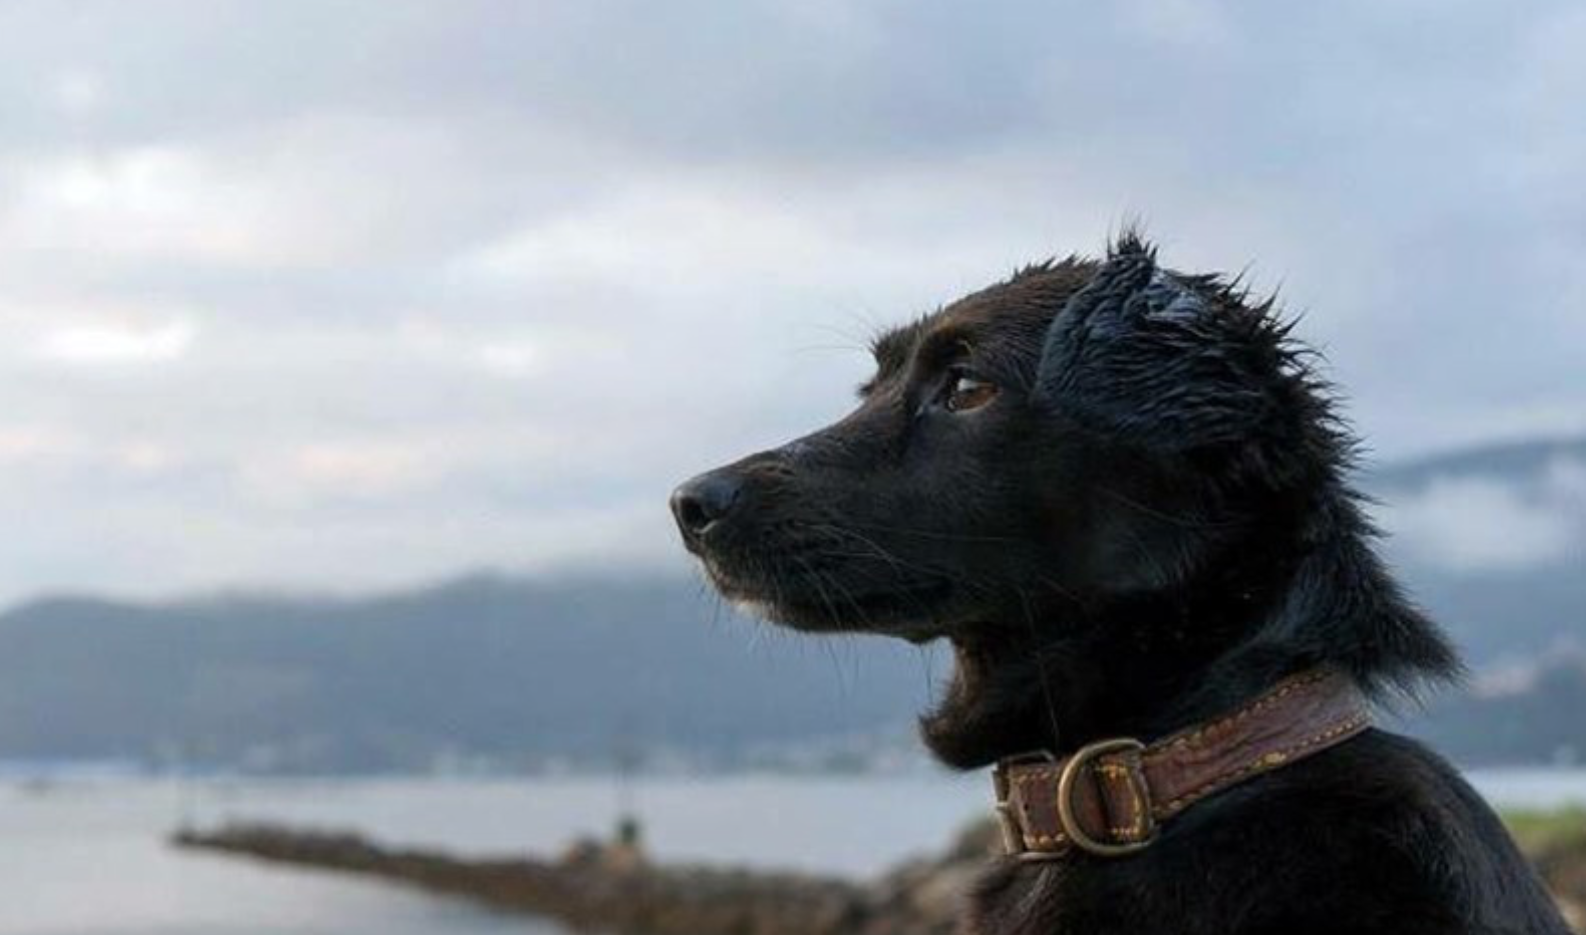 He is Comando, the dog that faithfully awaits the arrival of the Argentine submarine ARA San Juan